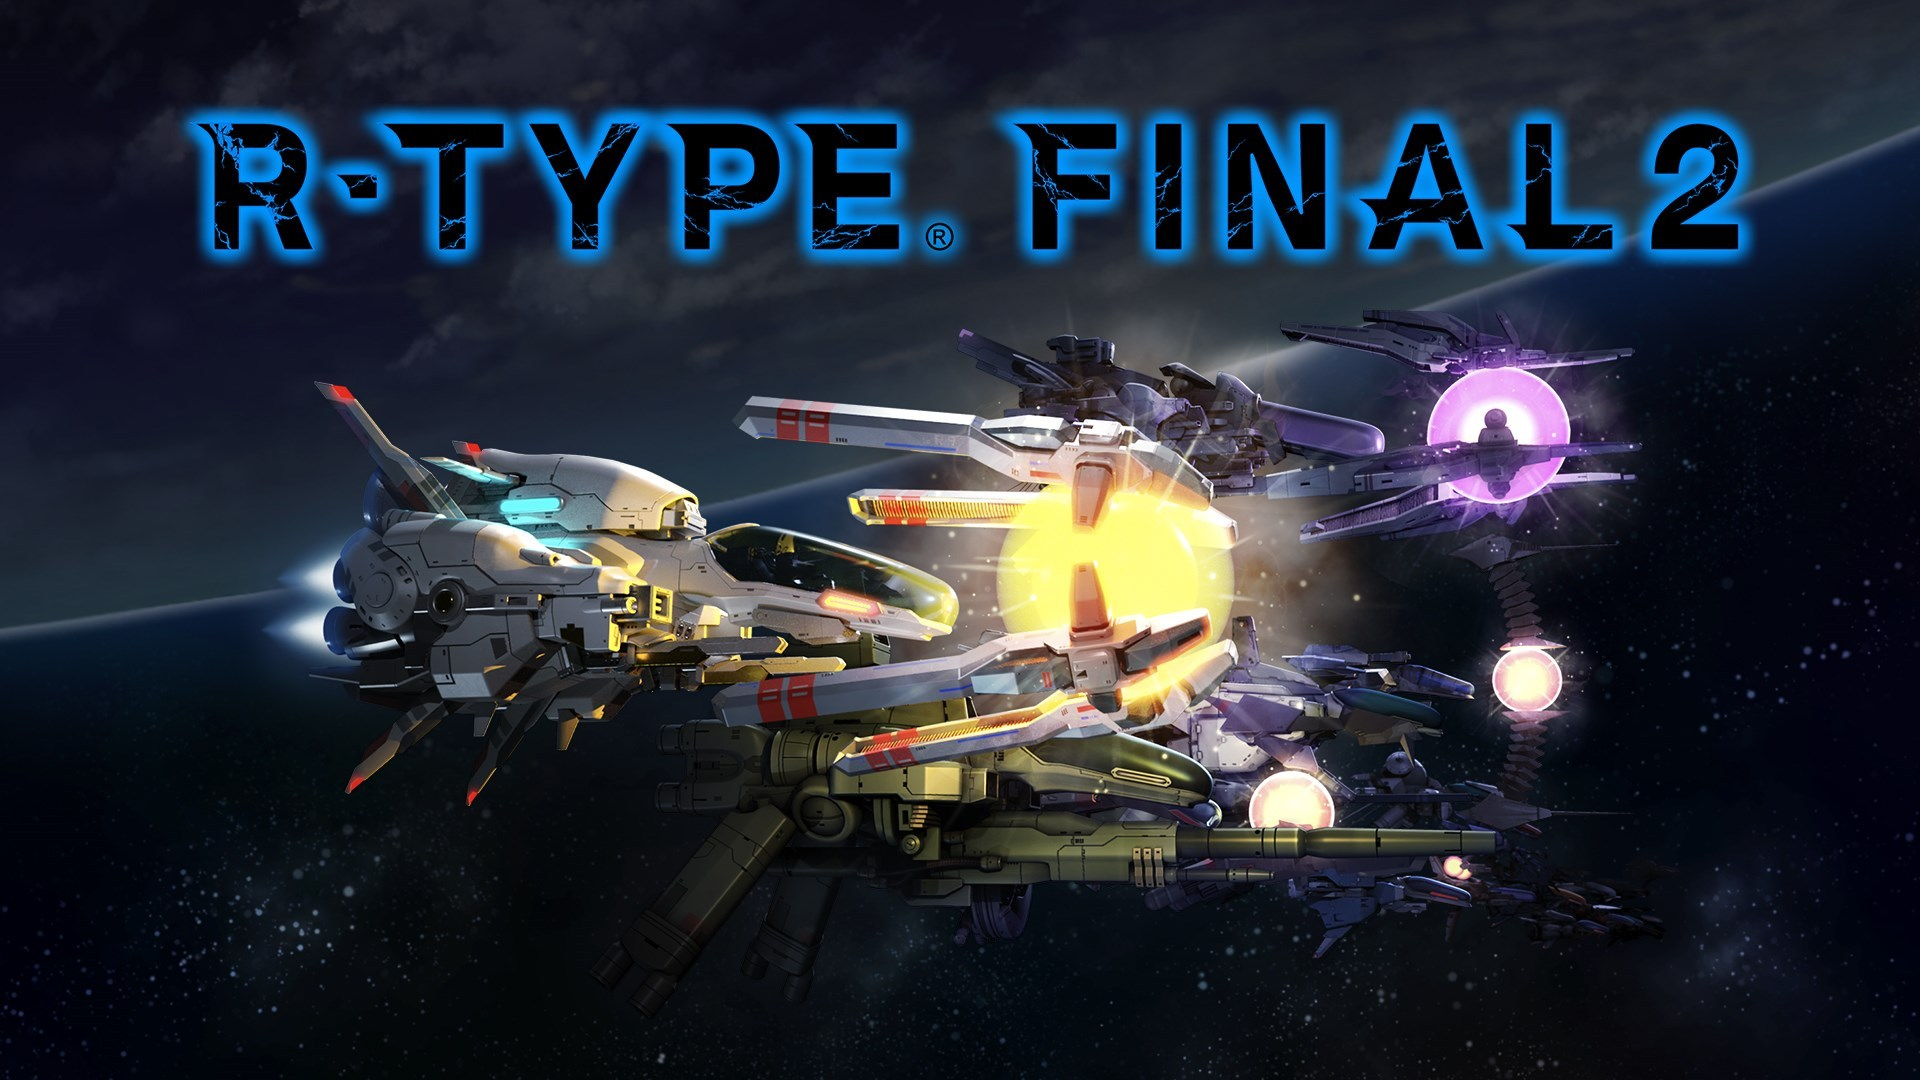 R-Type Final 2 Demo Is Now Available For Xbox One And Xbox Series X|S 1